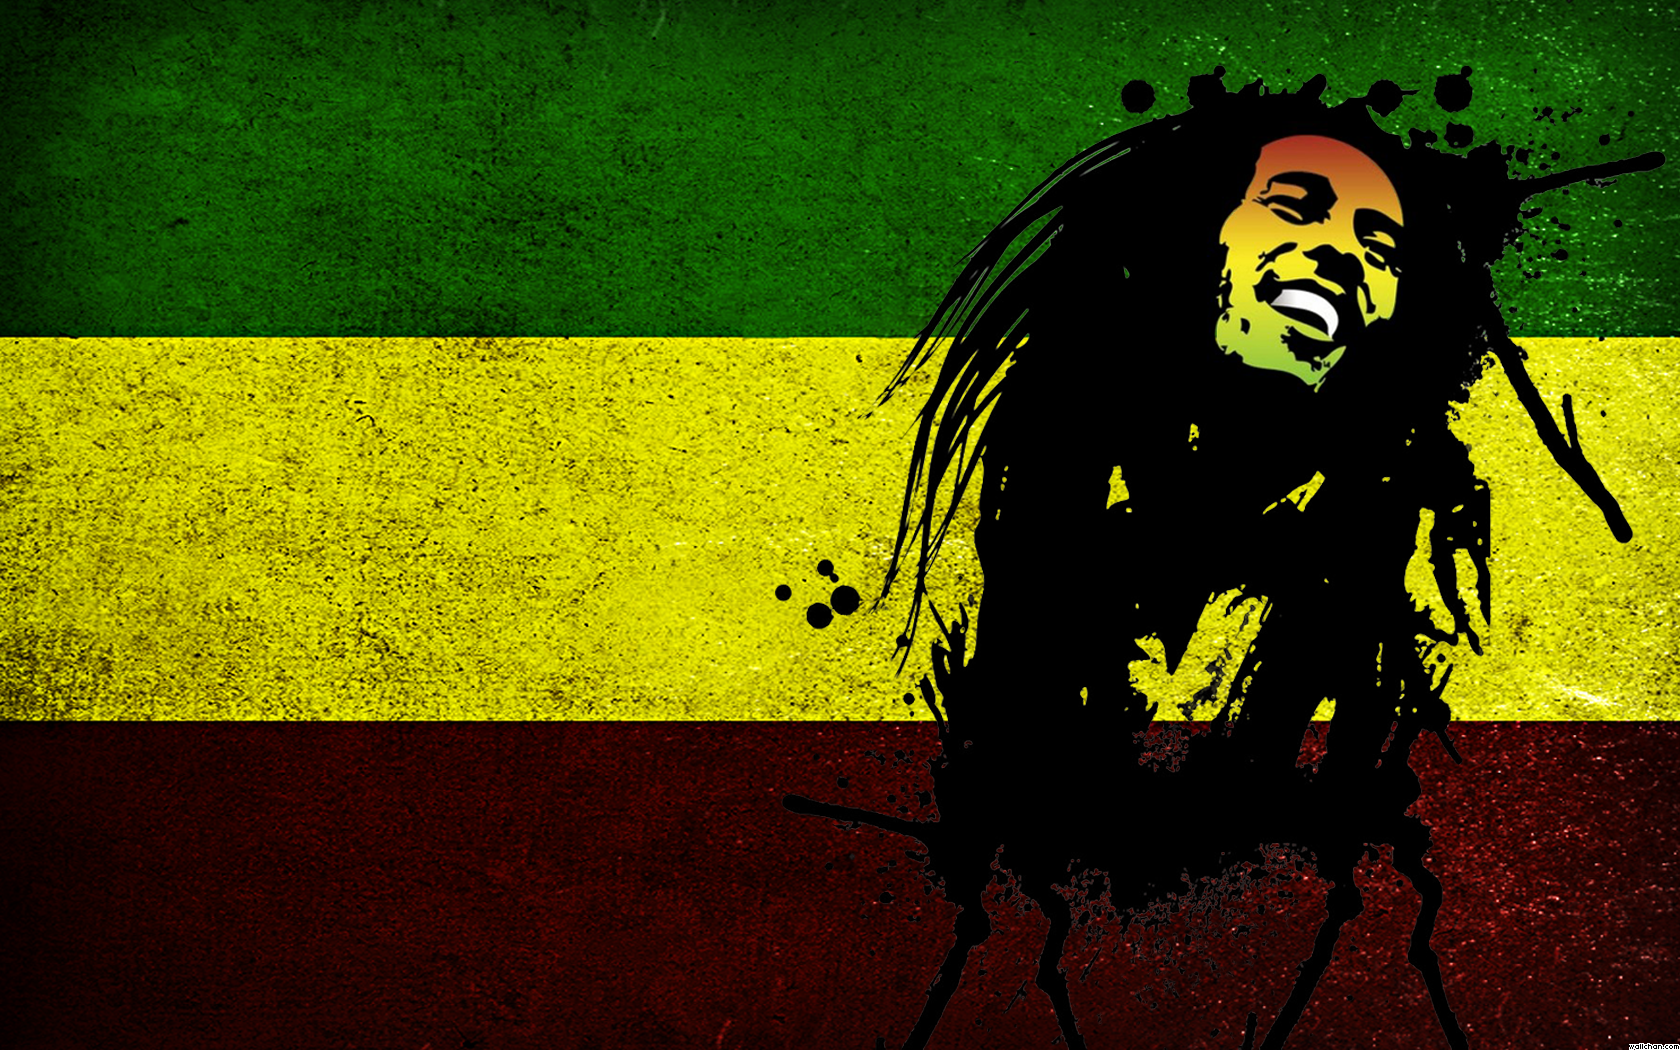 Hd Wallpapers Bob Marley Rasta Vector Hd Wallpaper In Desktop